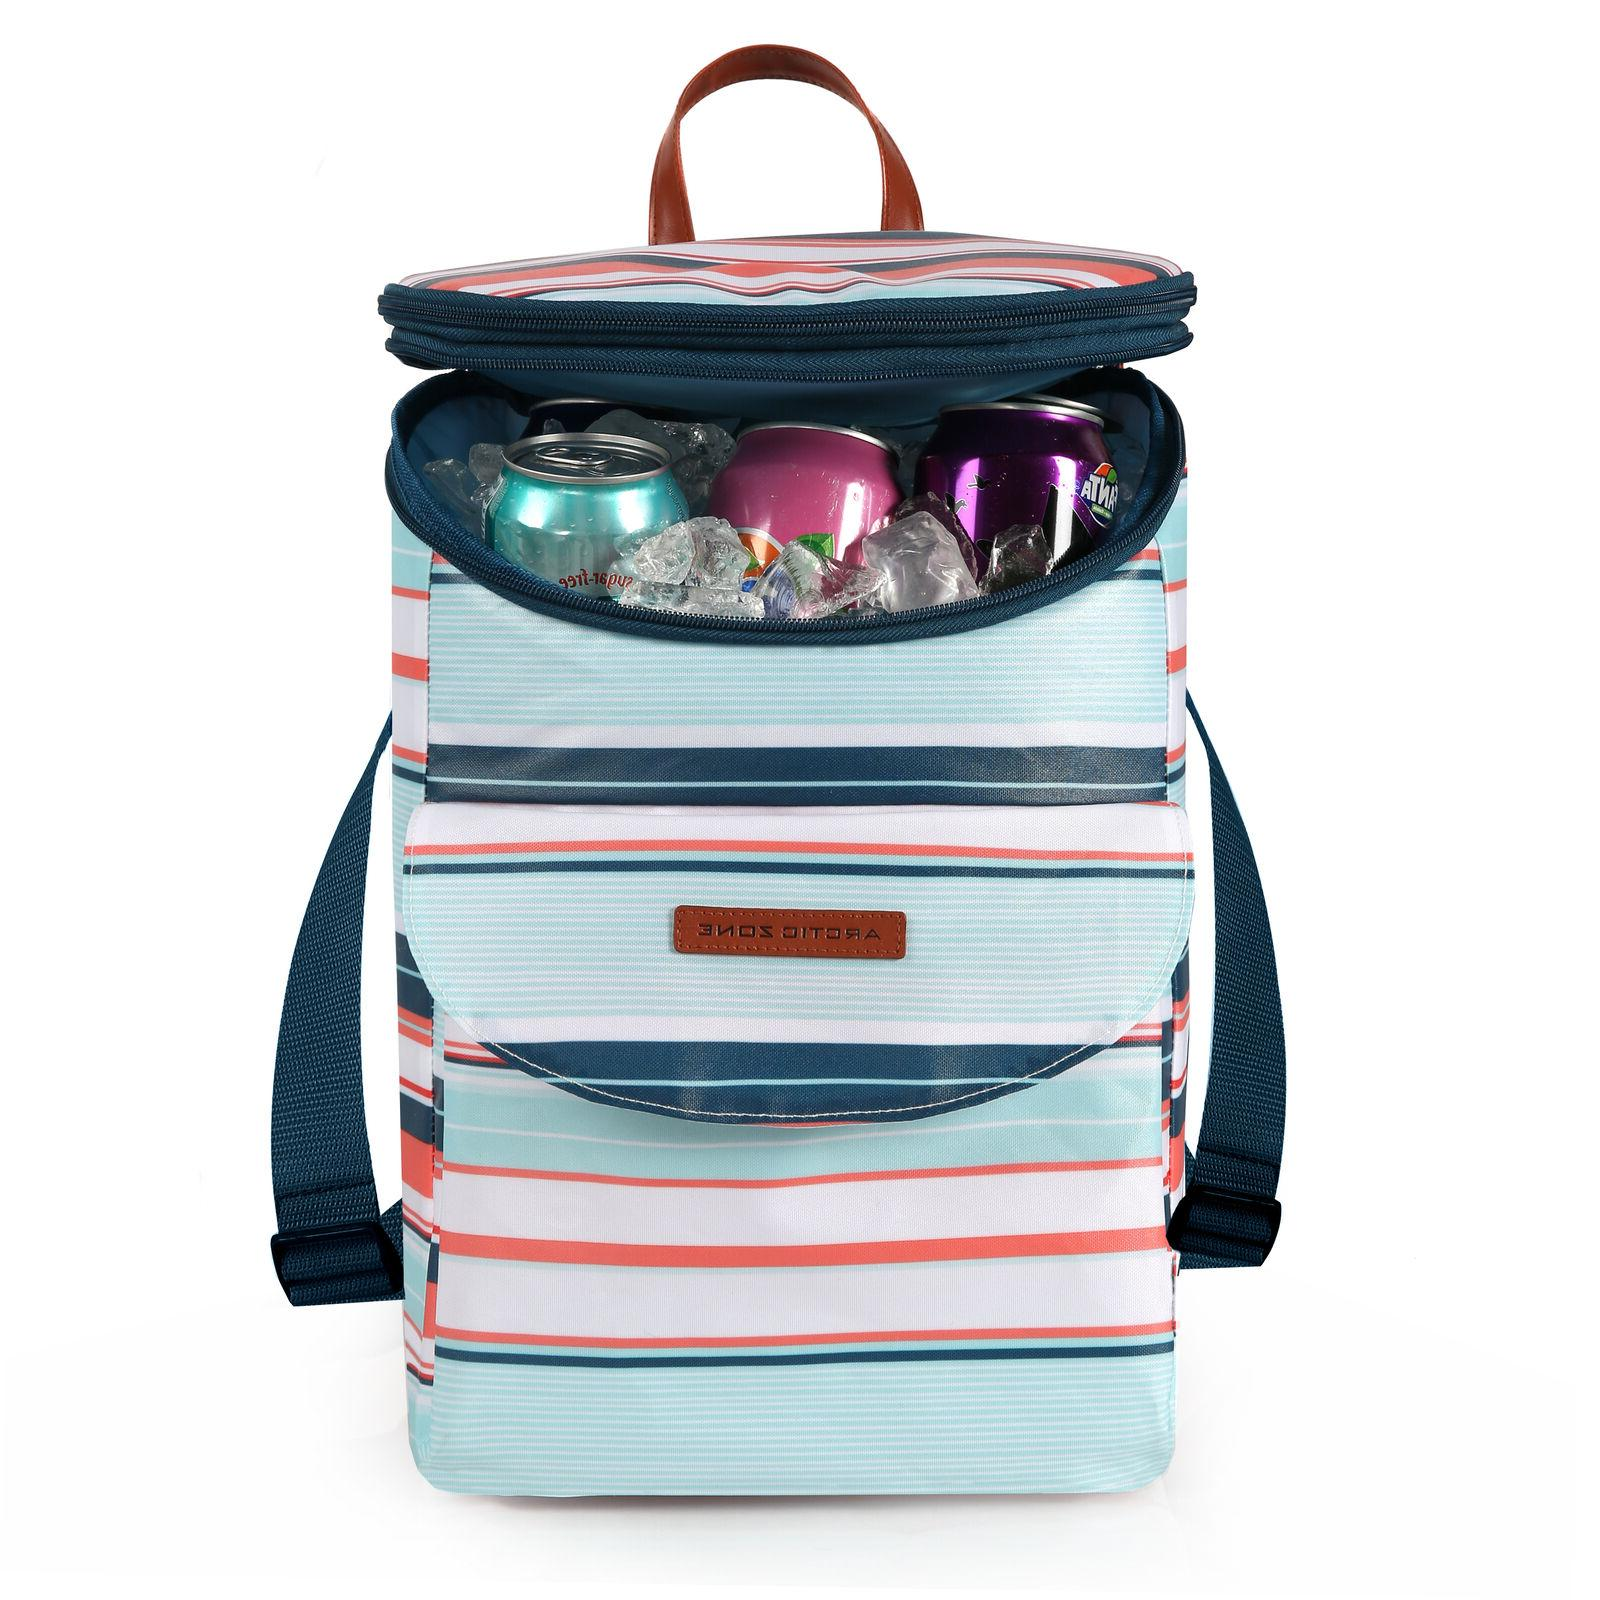 Arctic Can Lunch Box Beach Lake Insulated Backpack Cooler,